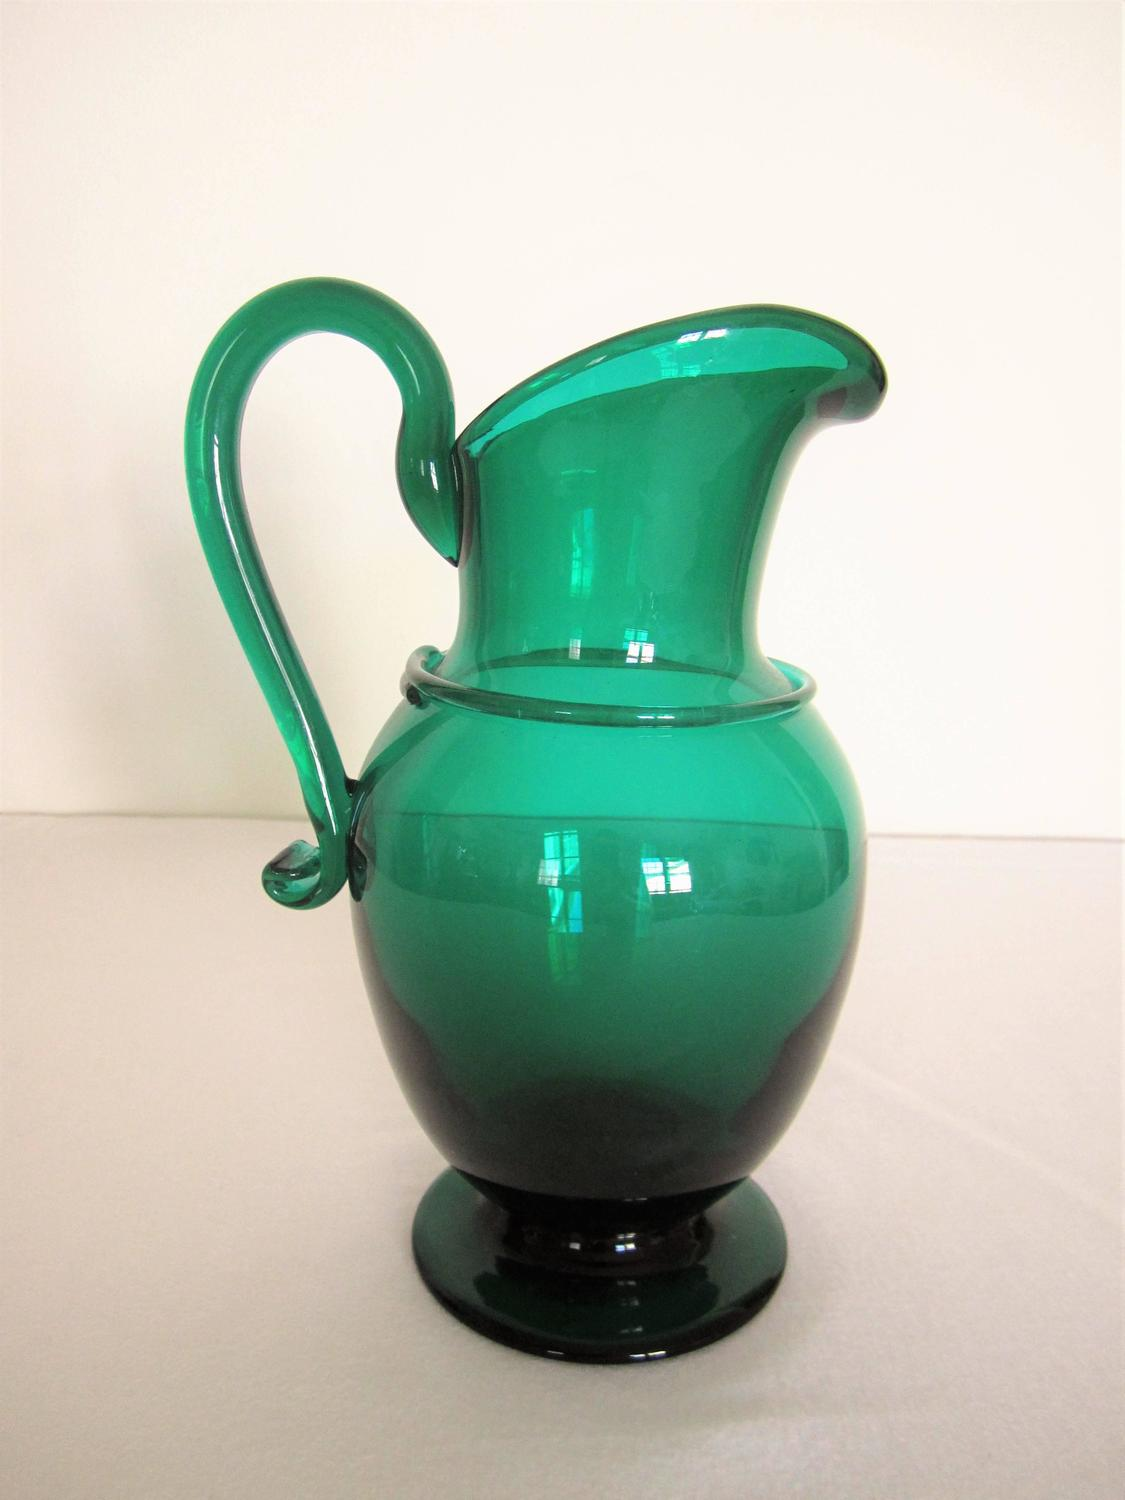 Emerald Green Art Glass Pitcher Or Vase For Sale At 1stdibs